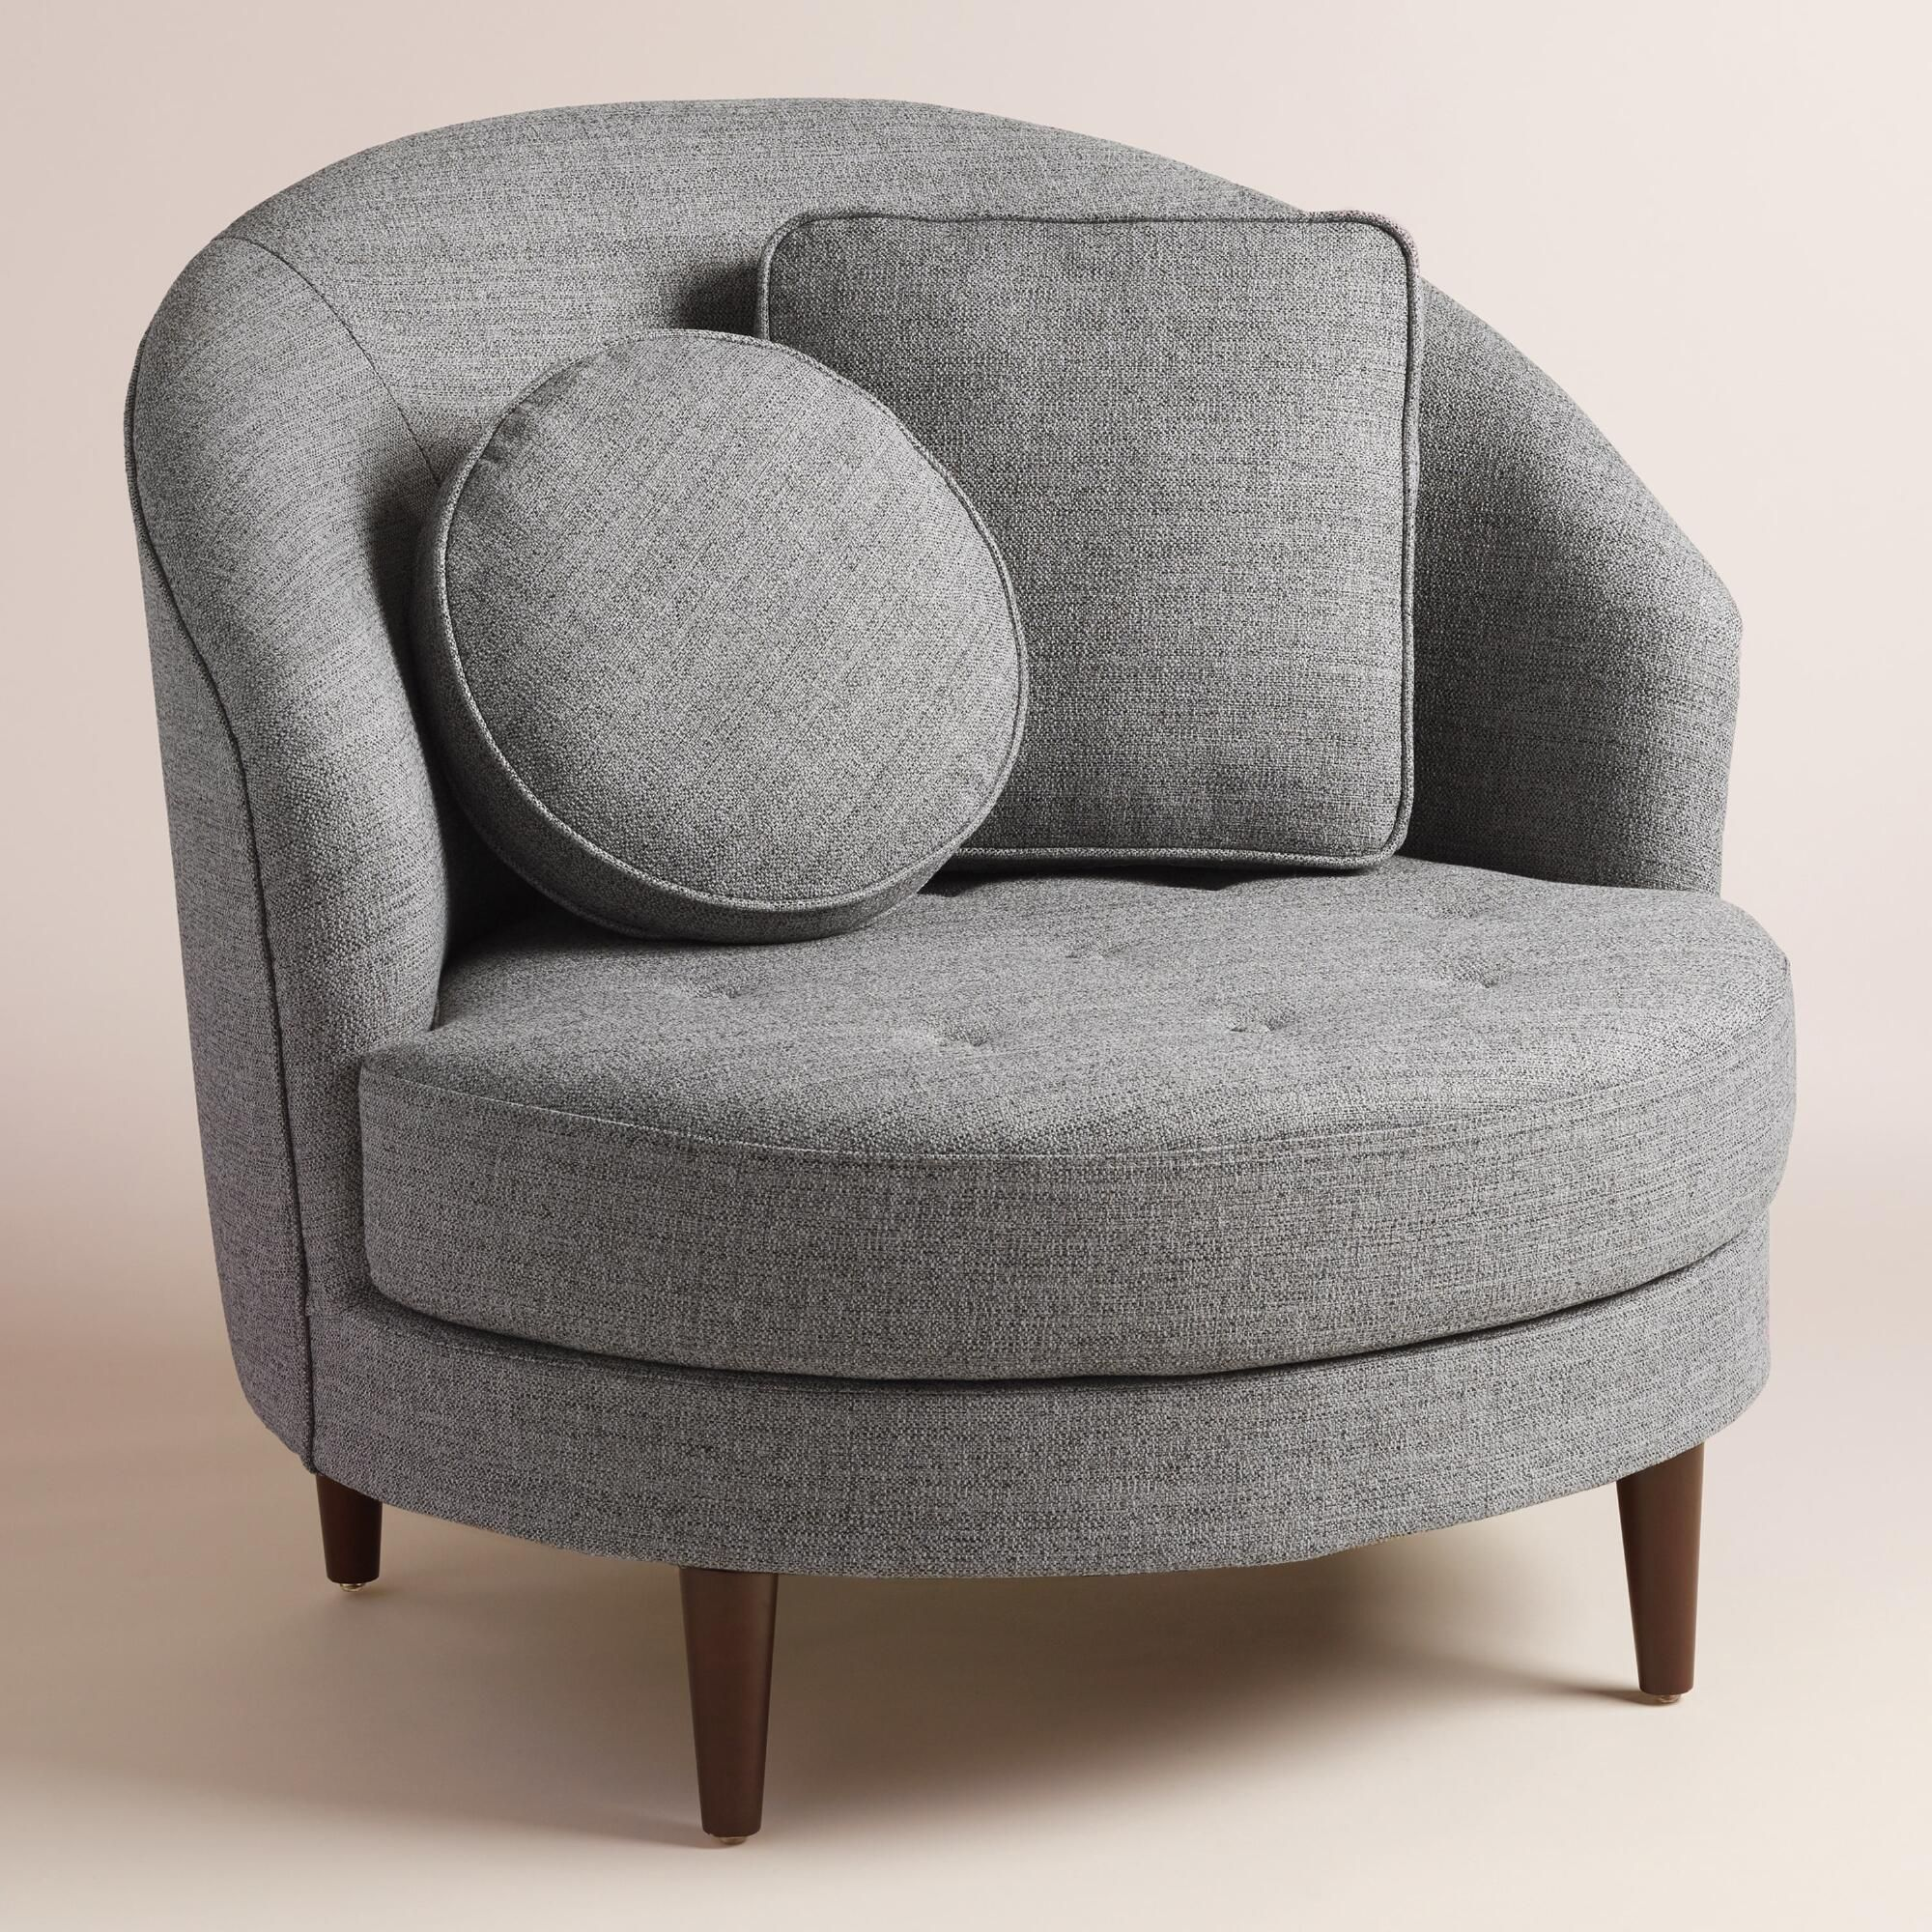 In A Round On Trend Shape Our Chair And A Half Makes A